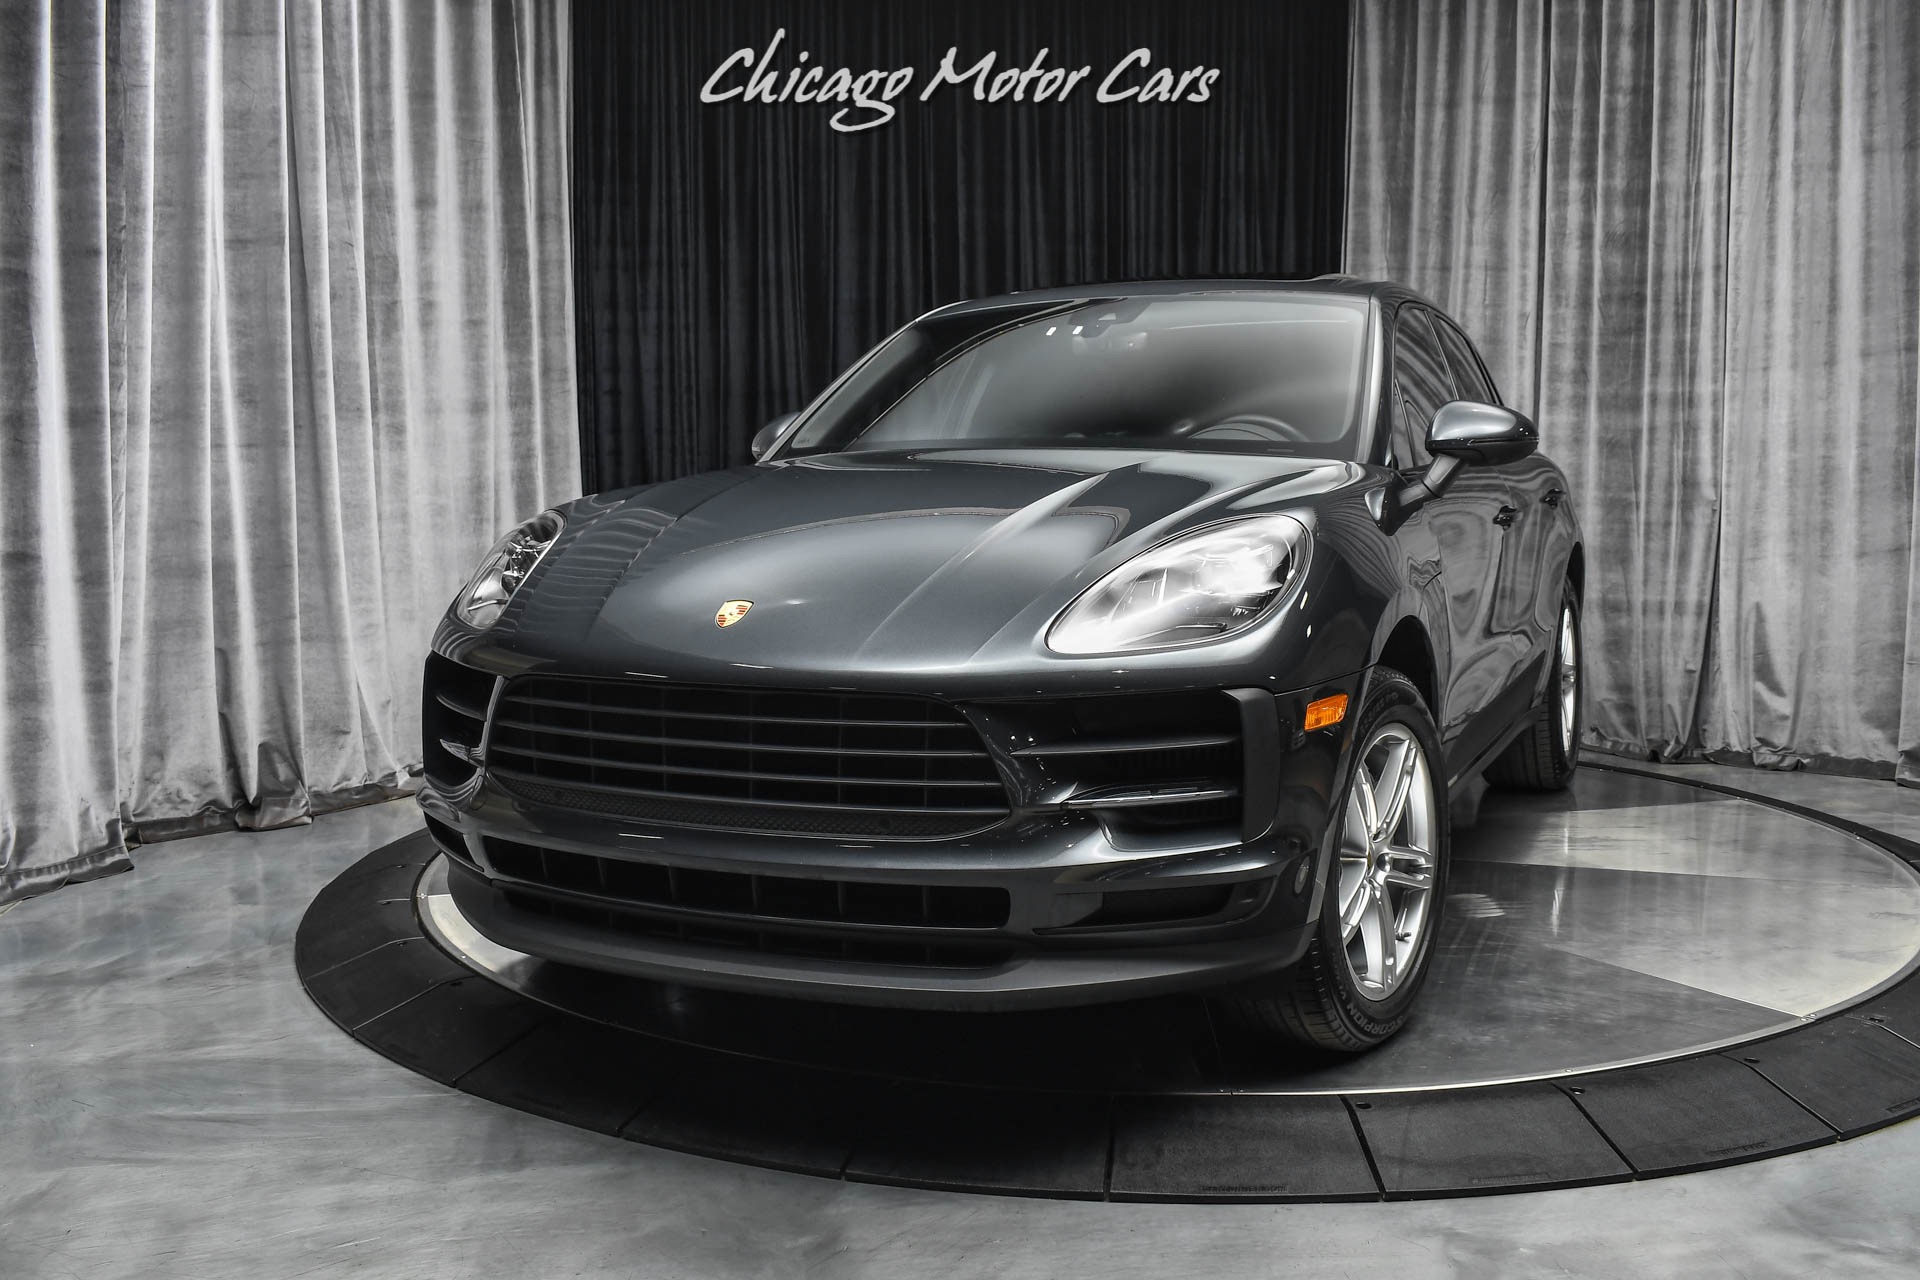 Used-2019-Porsche-Macan-AWD-S-SUV-PREMIUM-PACKAGE-PLUS-PRISTINE-CONDITION-ONE-OWNER